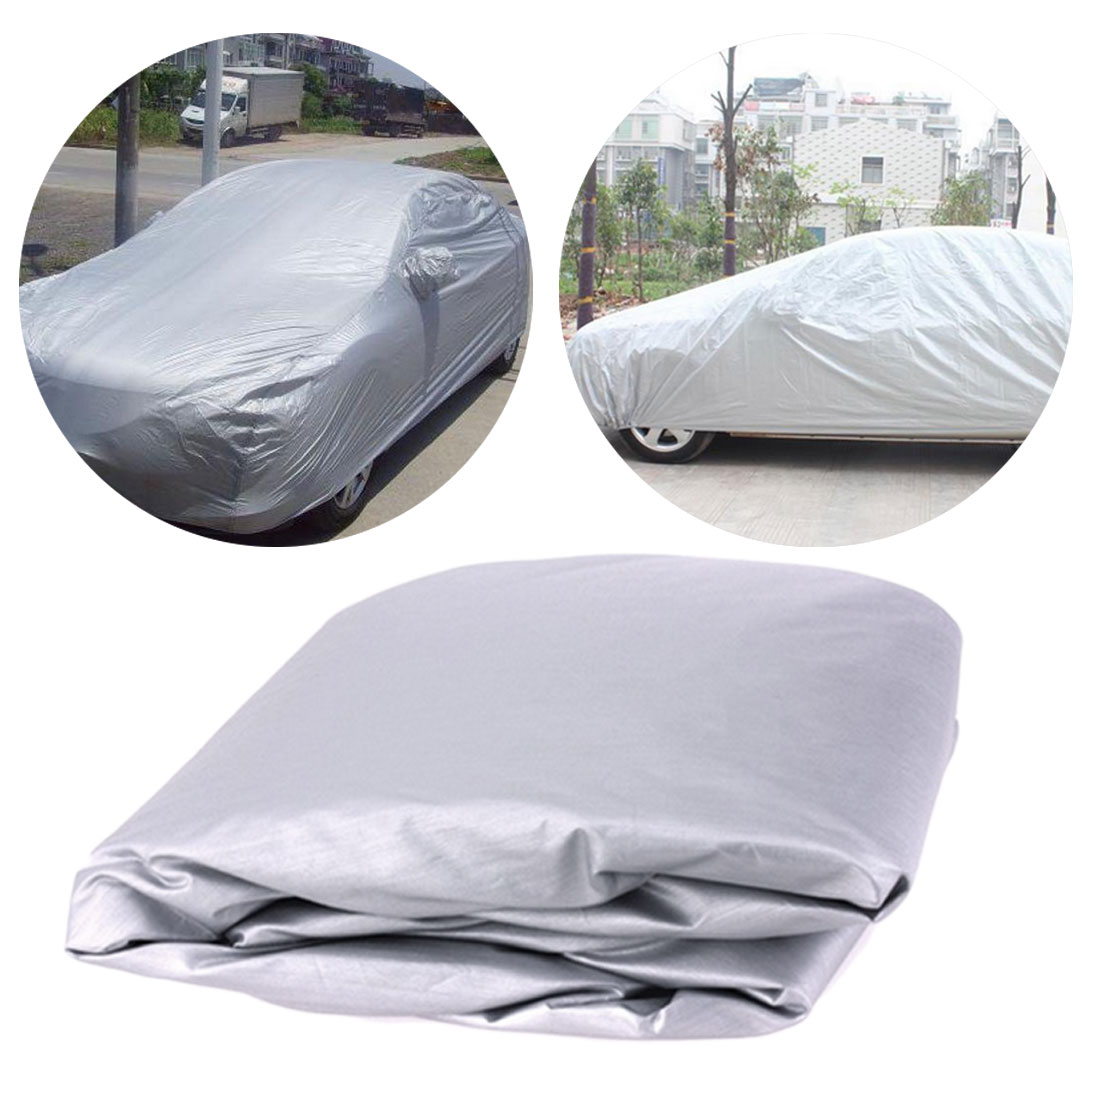 Car Silver Cover M/L/XL SUV Protection cover Breathable Outdoor Indoor Snow Ice Sun Rain Resistant For All Season All Weather image